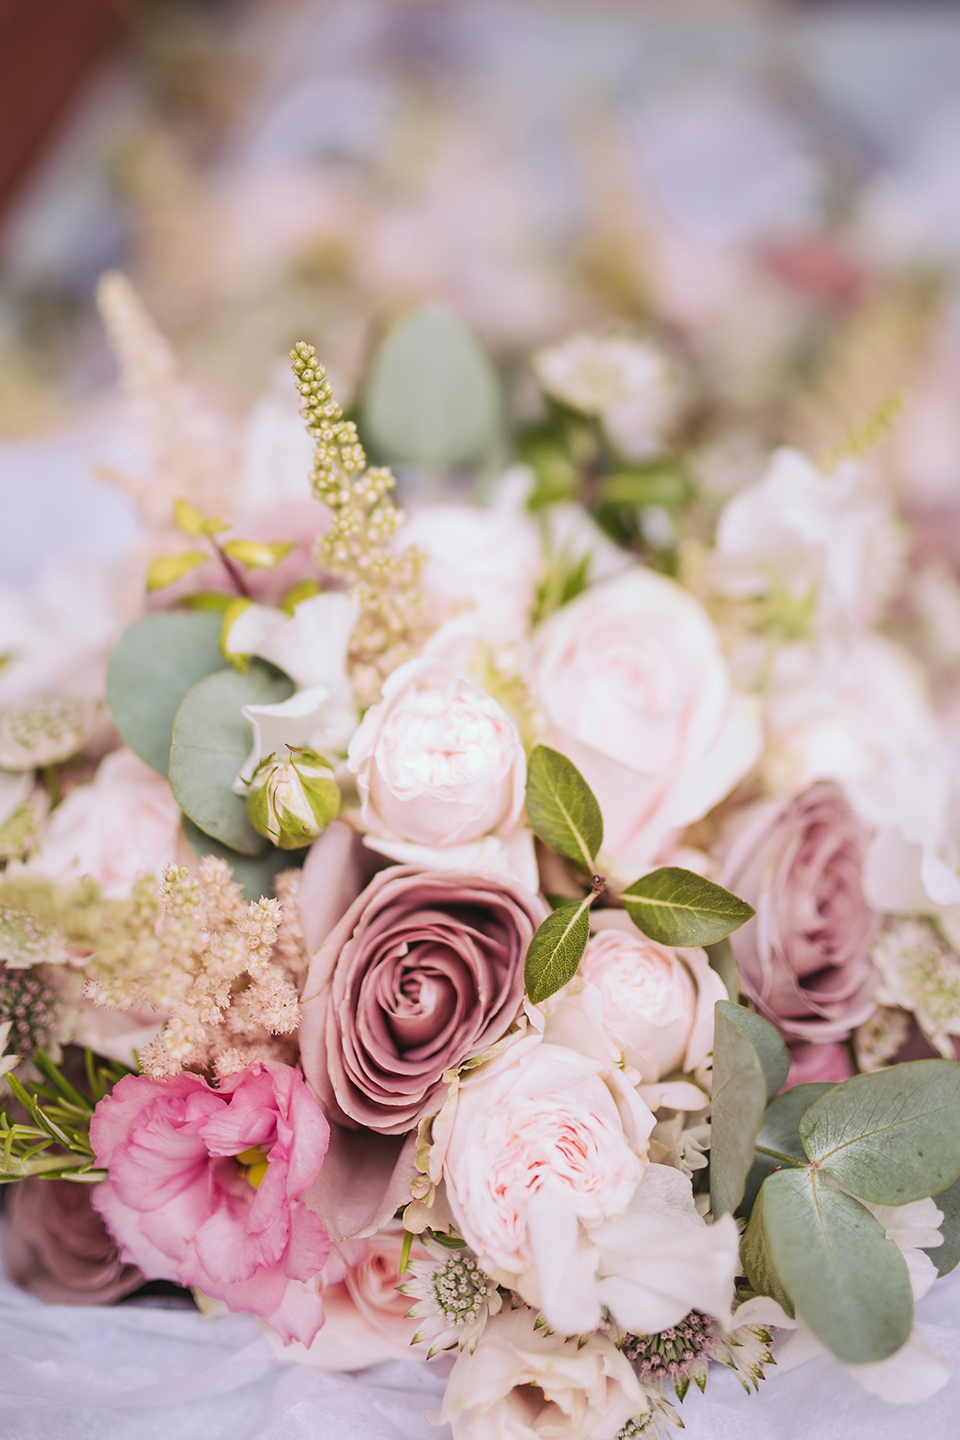 The couple chose pink wedding flowers for her summer wedding at Bassmead Manor Barns